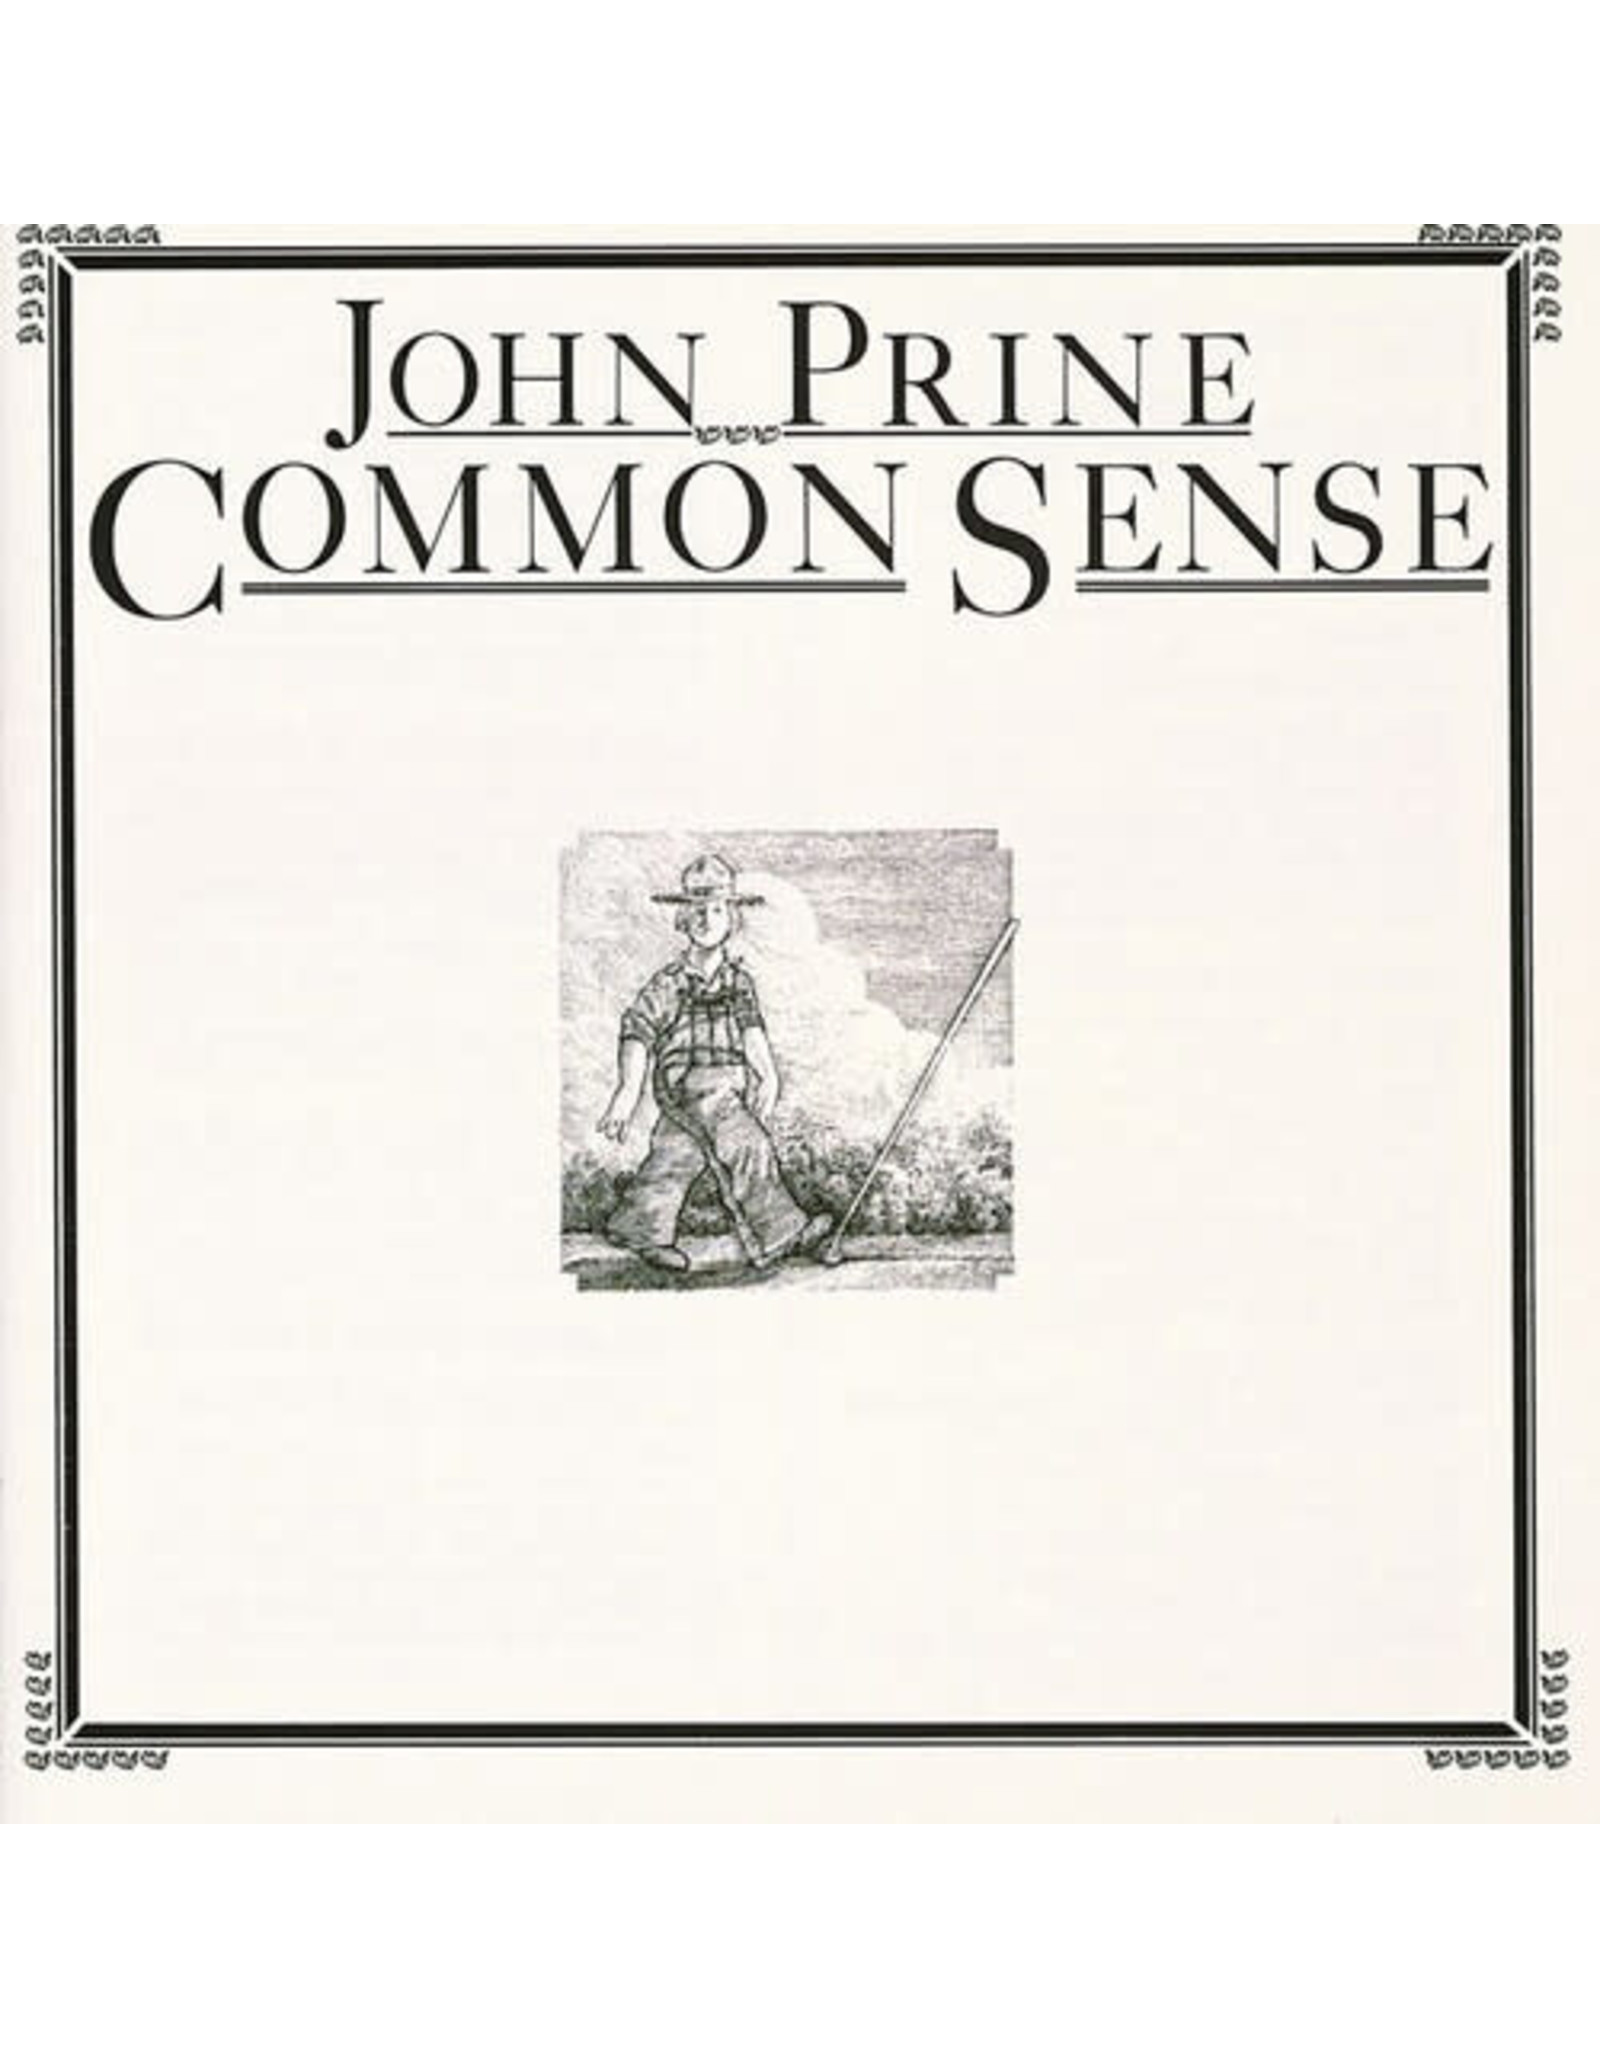 New Vinyl John Prine - Common Sense LP